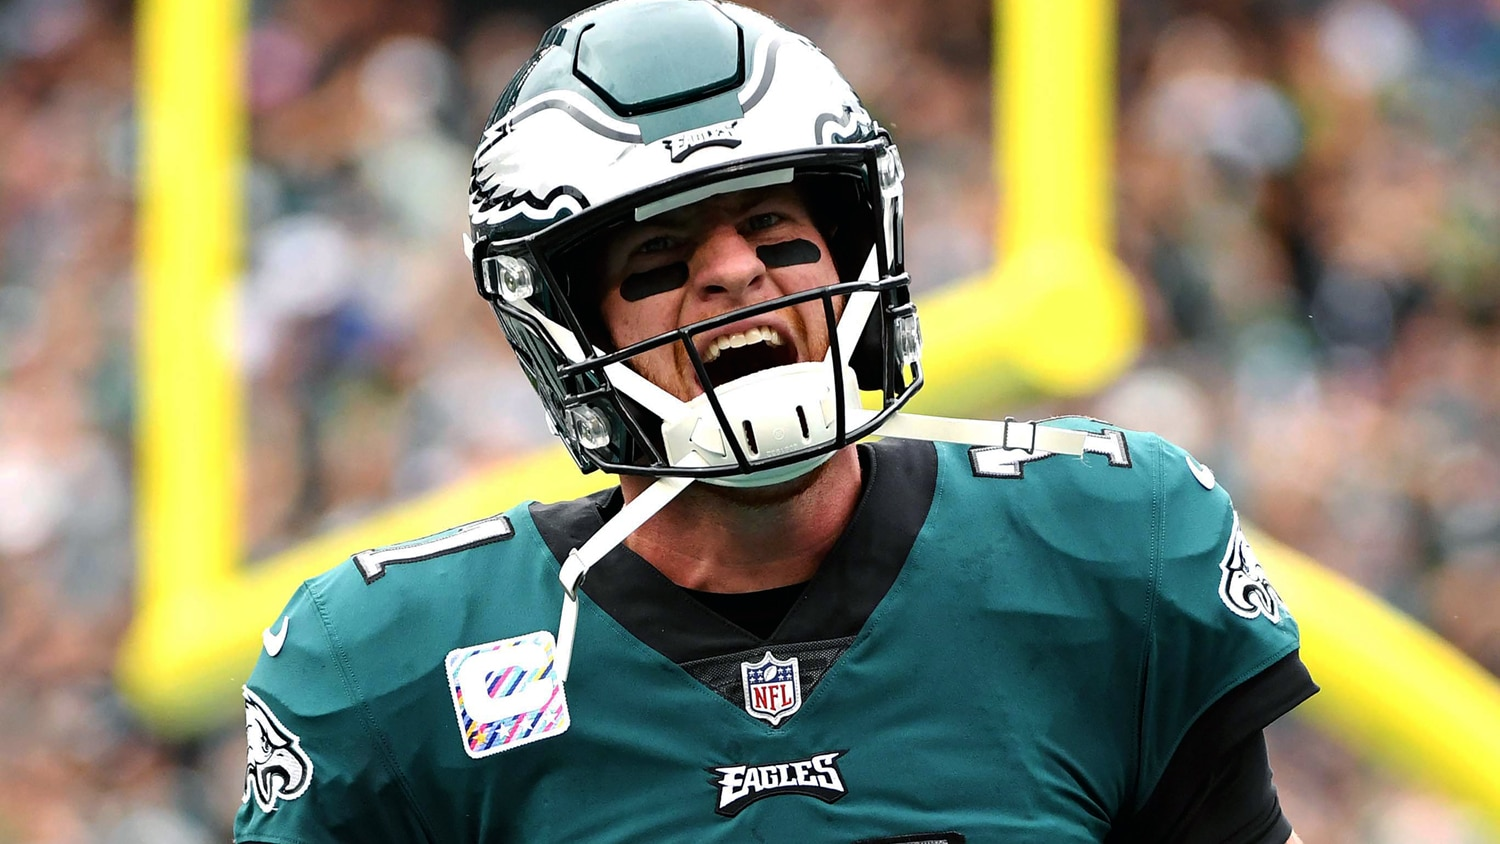 Eagles Kid Carson Wentz Was Top 2017 Nfl Breakout Star Fast